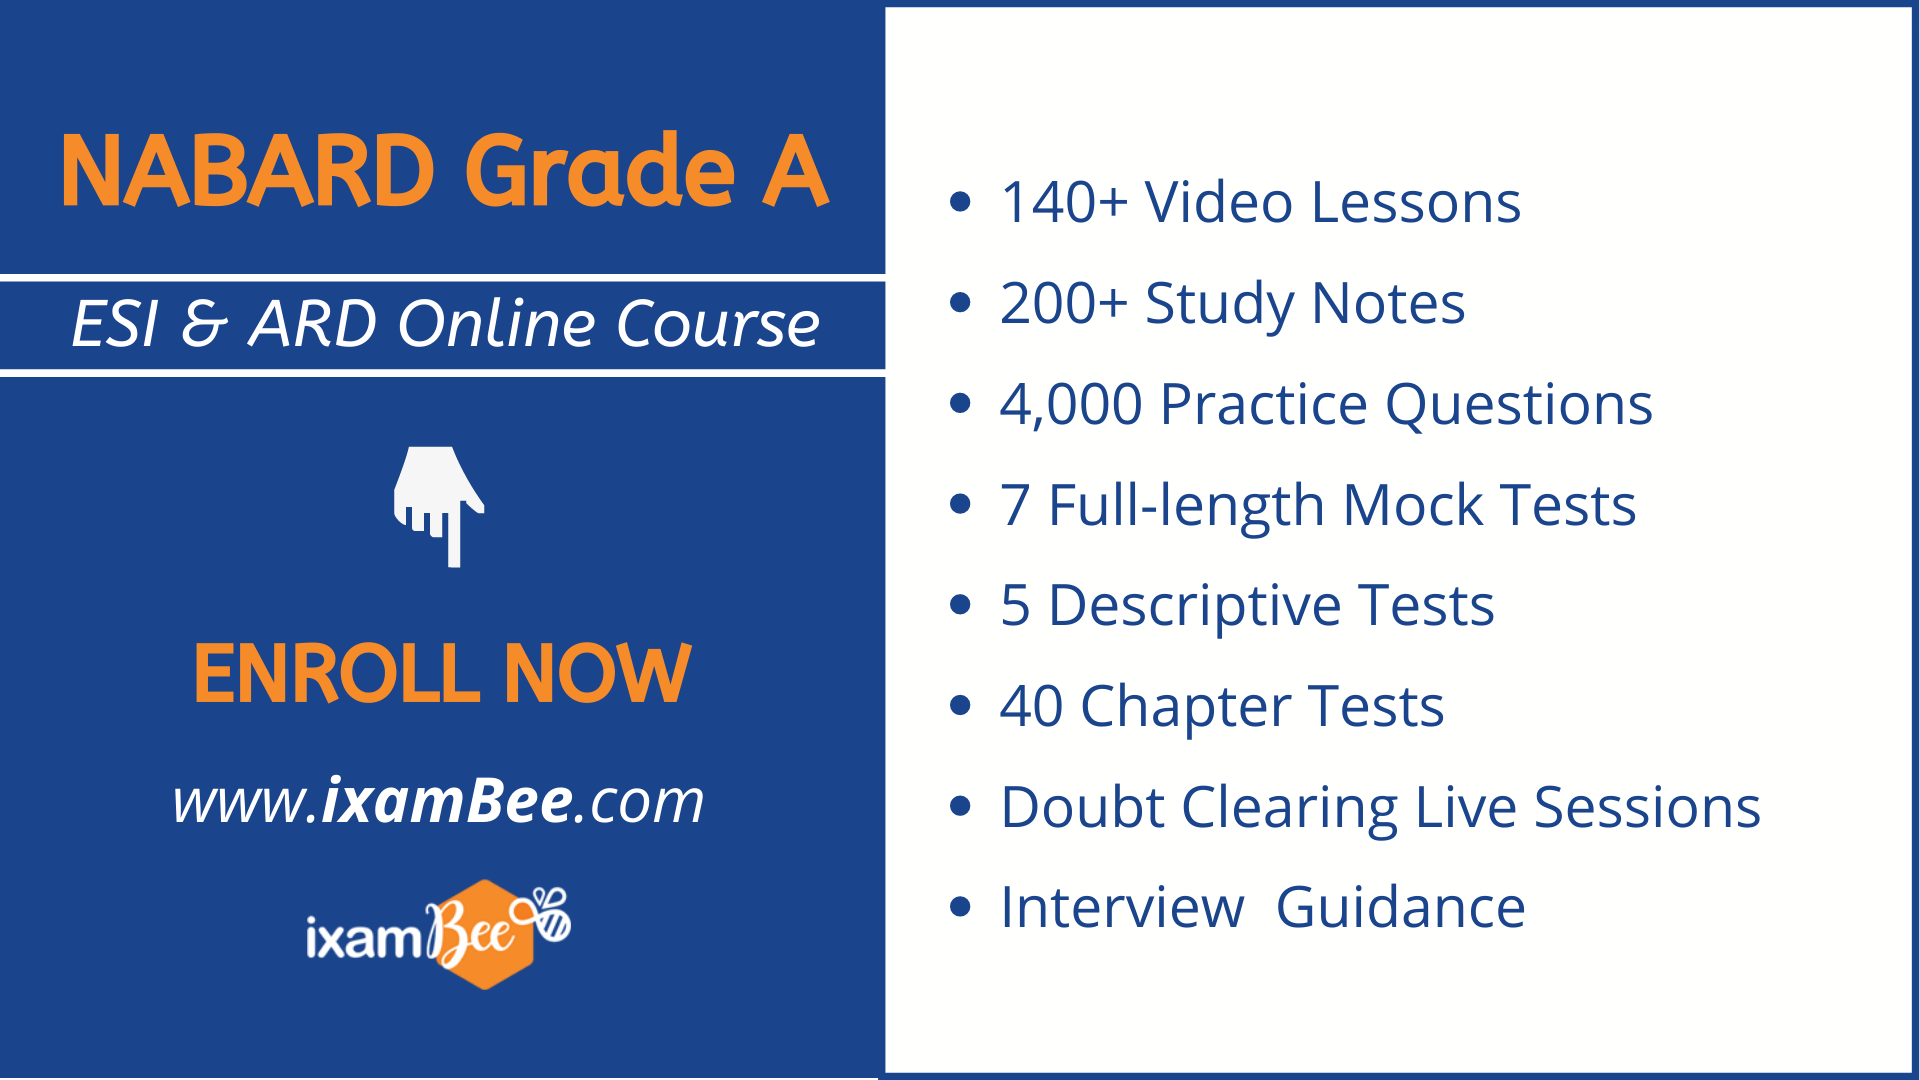 NABARD Grade A ESI and ARD online course